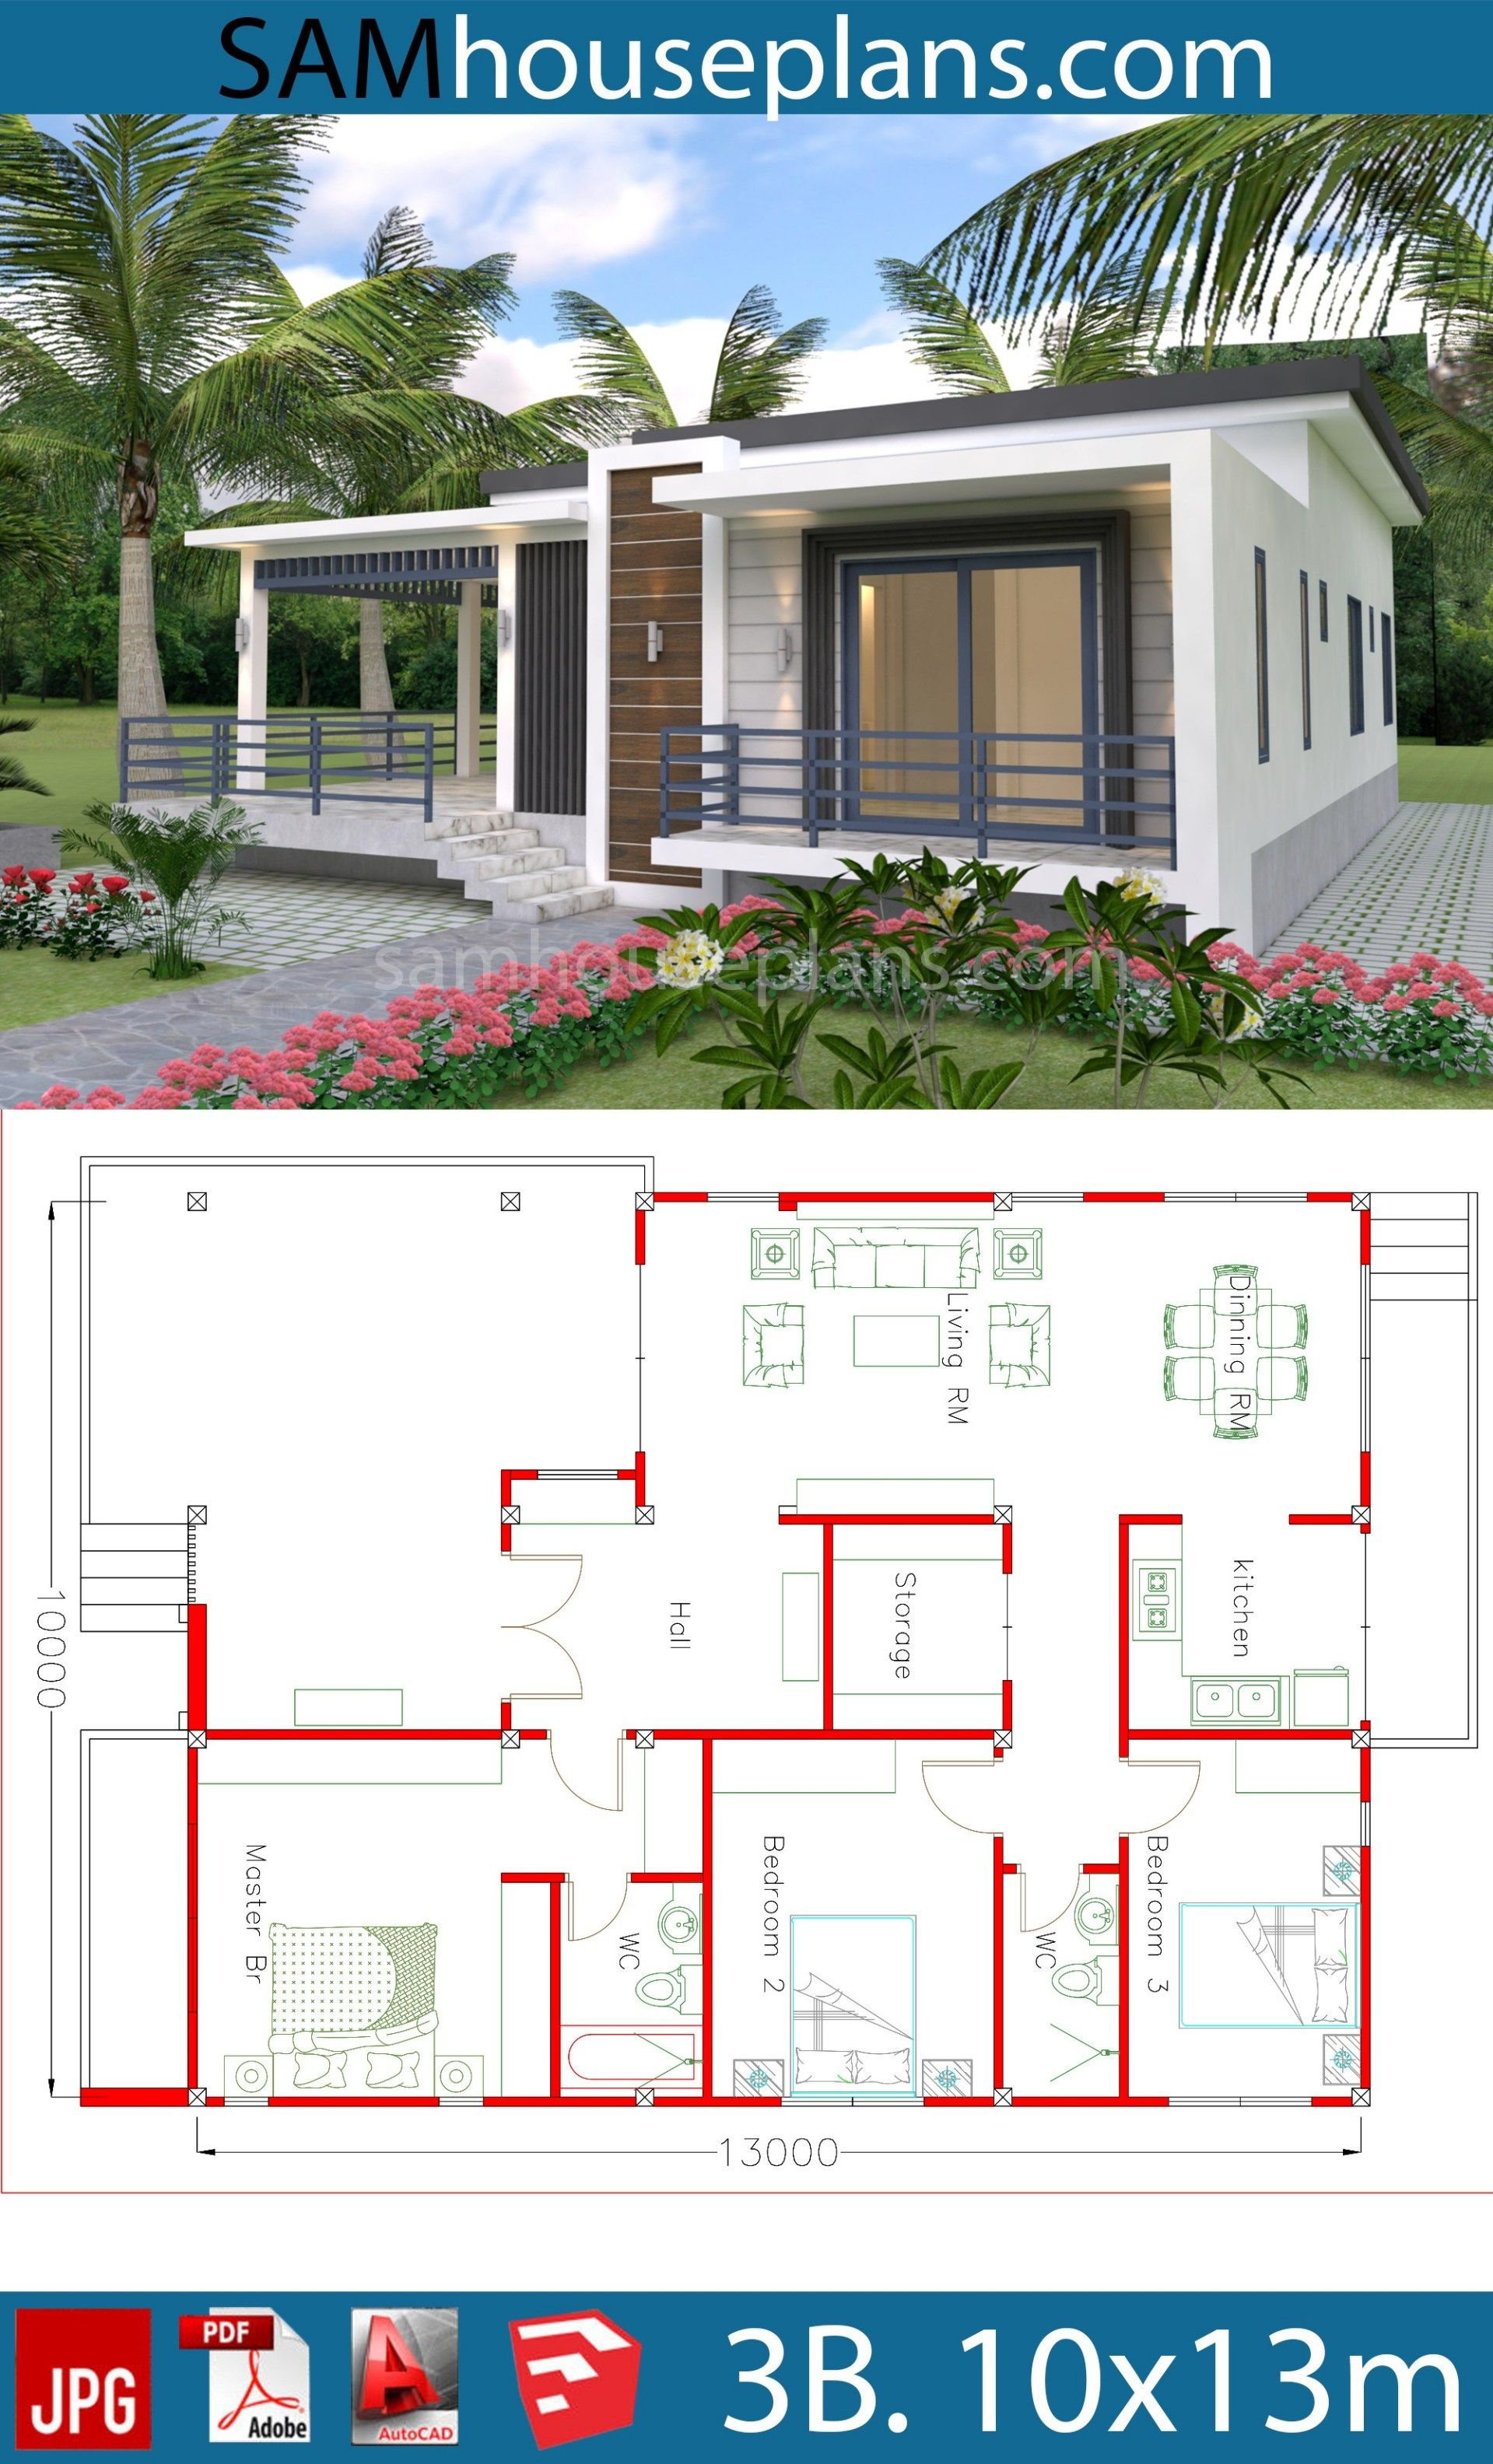 House Plans 10x13m With 3 Bedrooms Vacation House Plans